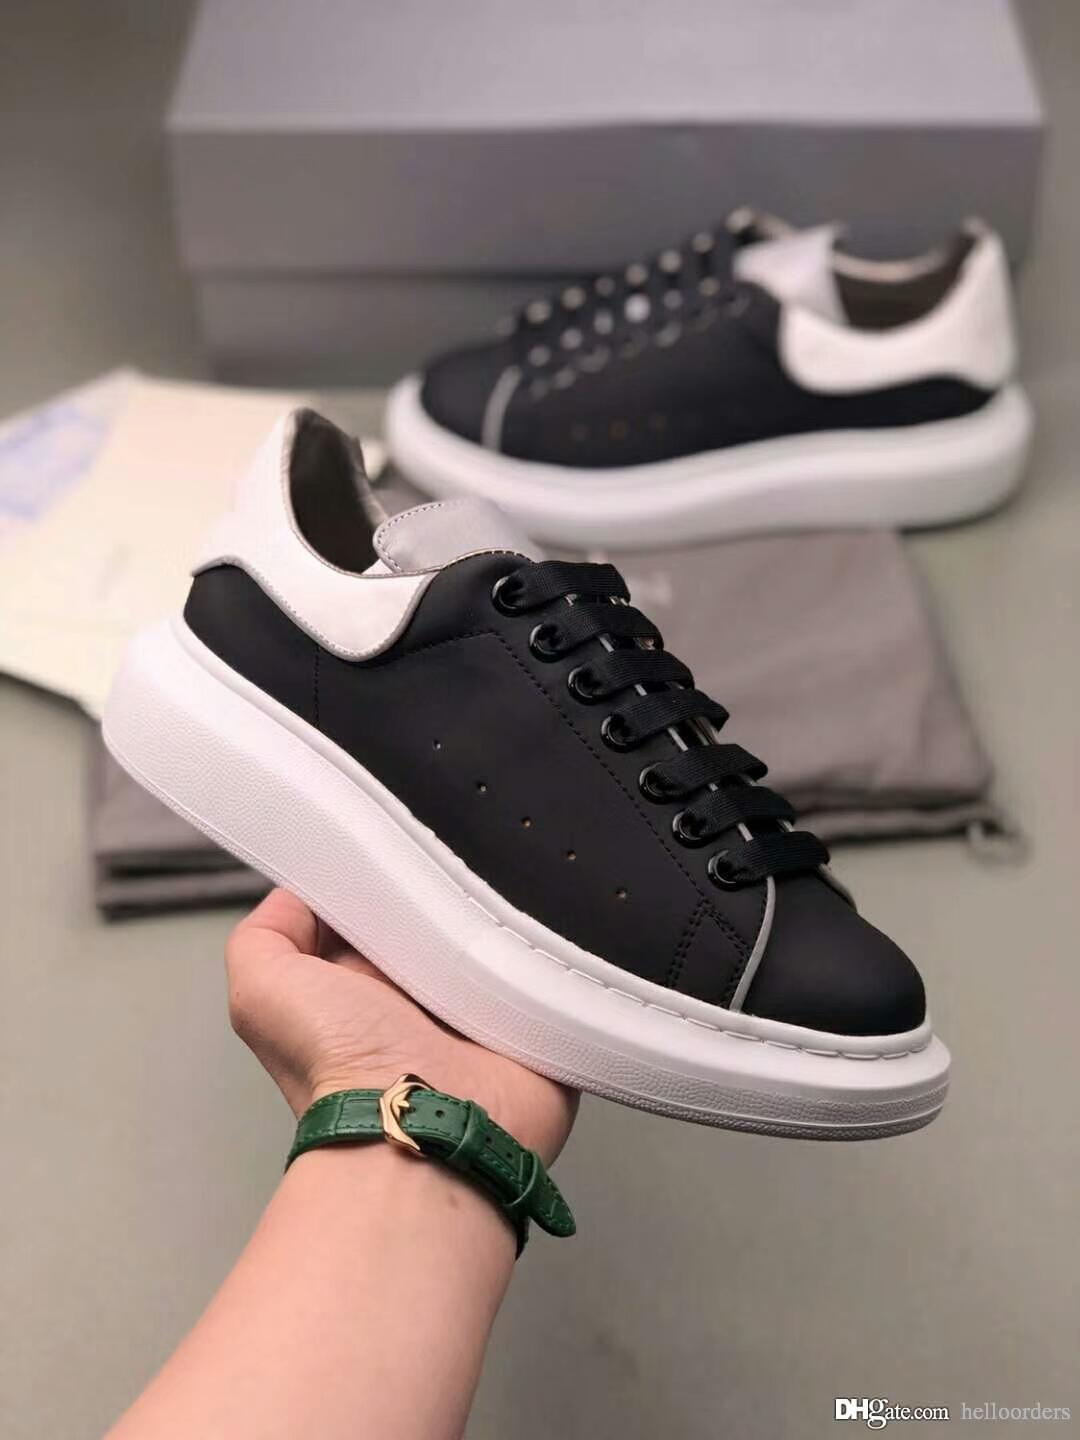 a7474d29c 2019 2019 Luxury Designer Brand Shoes Women Mens Espadrilles Black Grey  Authentic Leather Casual Shoes Girl Women Men Flat Sneakers From  Helloorders, ...